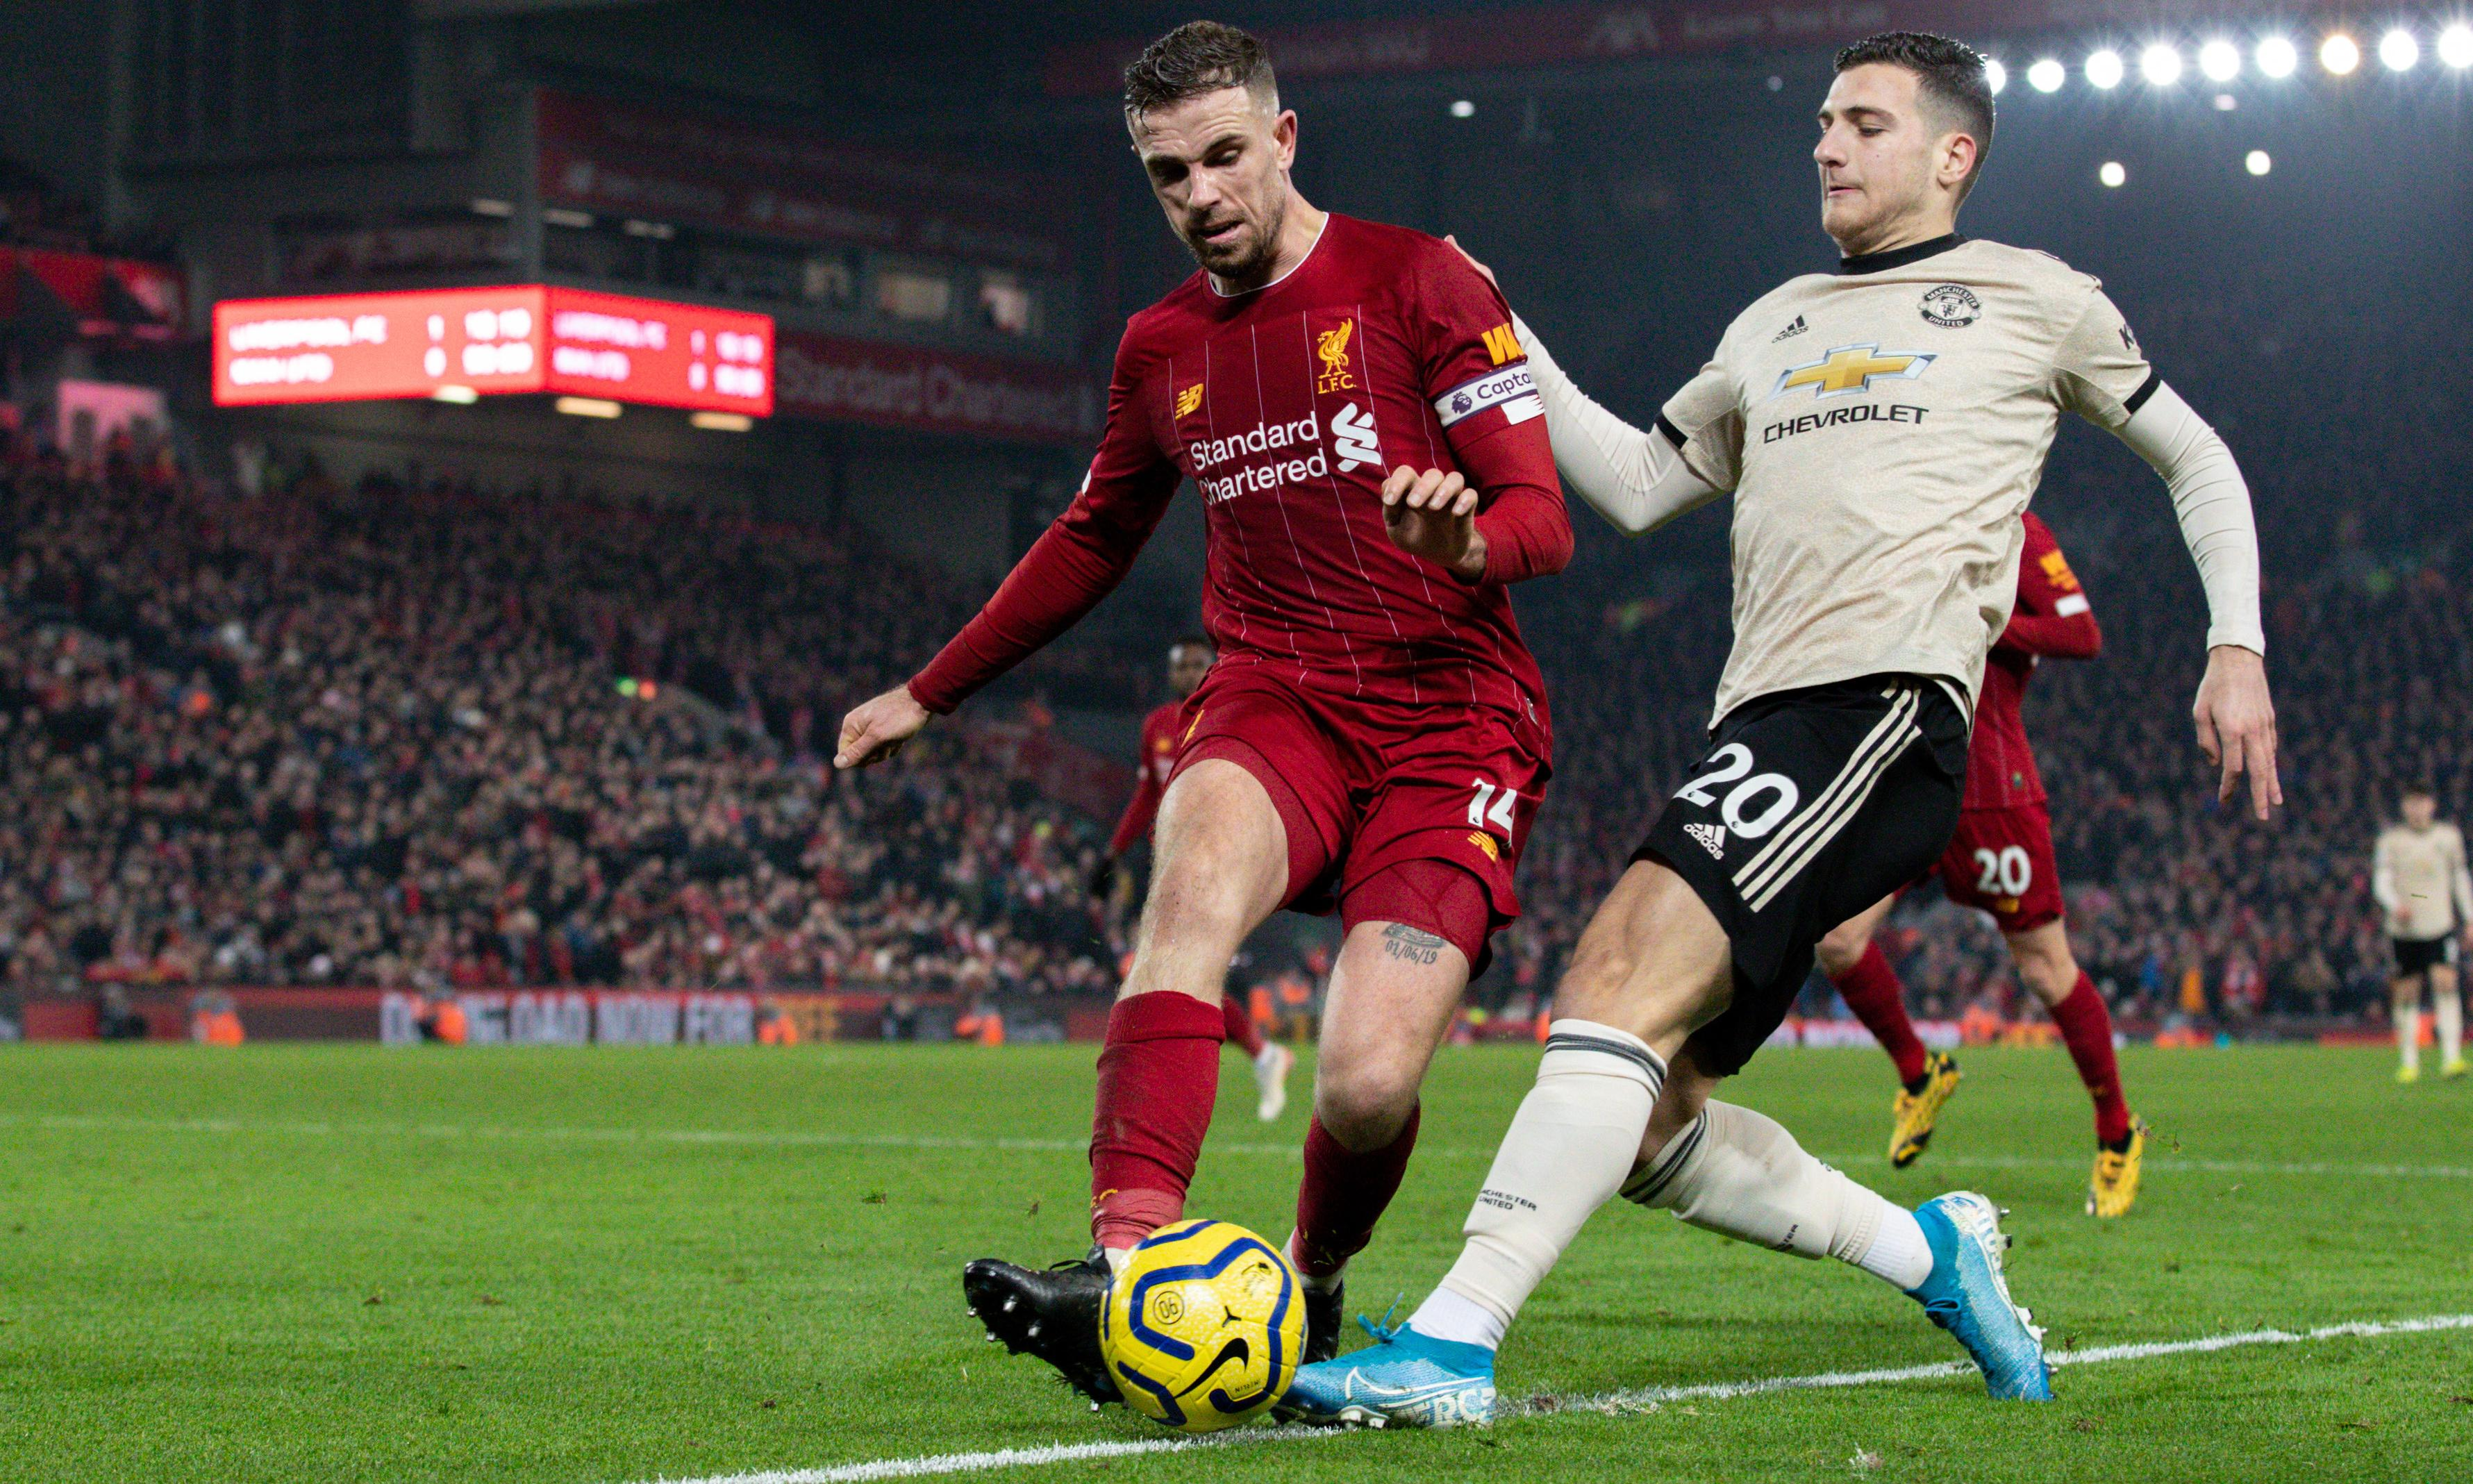 Liverpool 2-0 Manchester United: Premier League player ratings